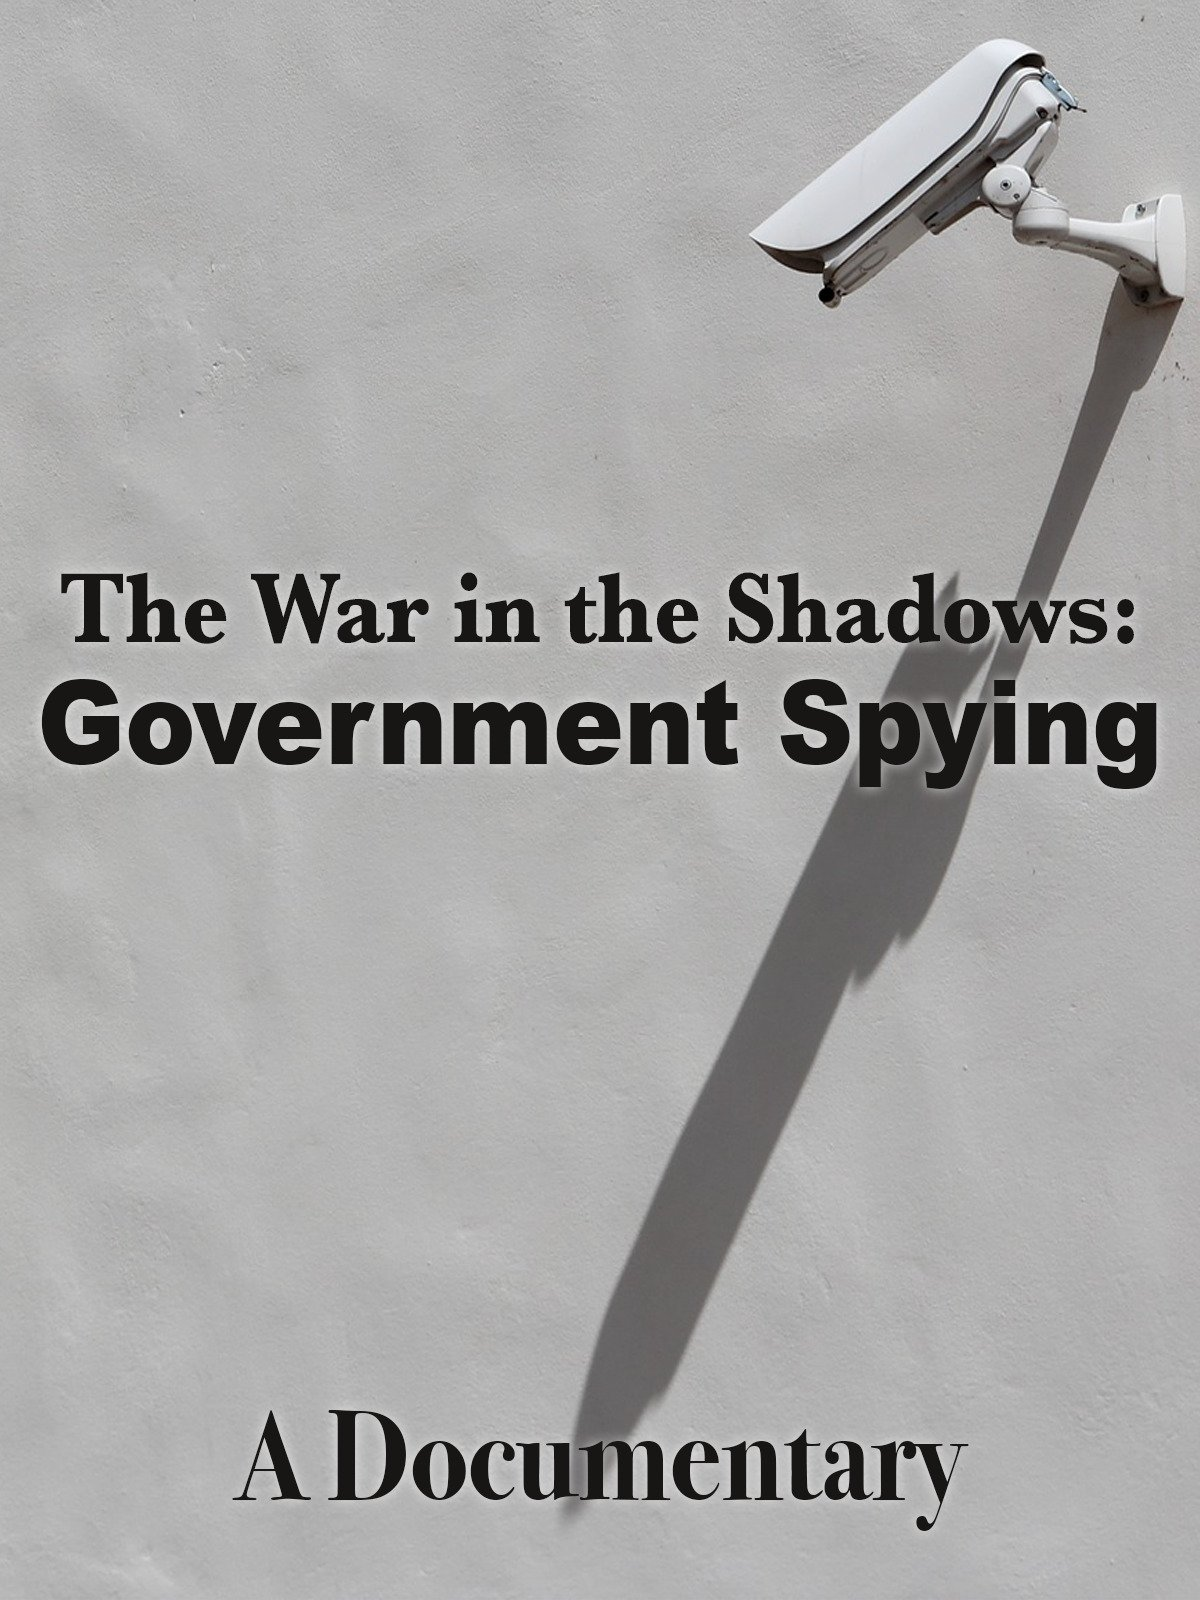 The War in the Shadows: Government Spying A Documentary